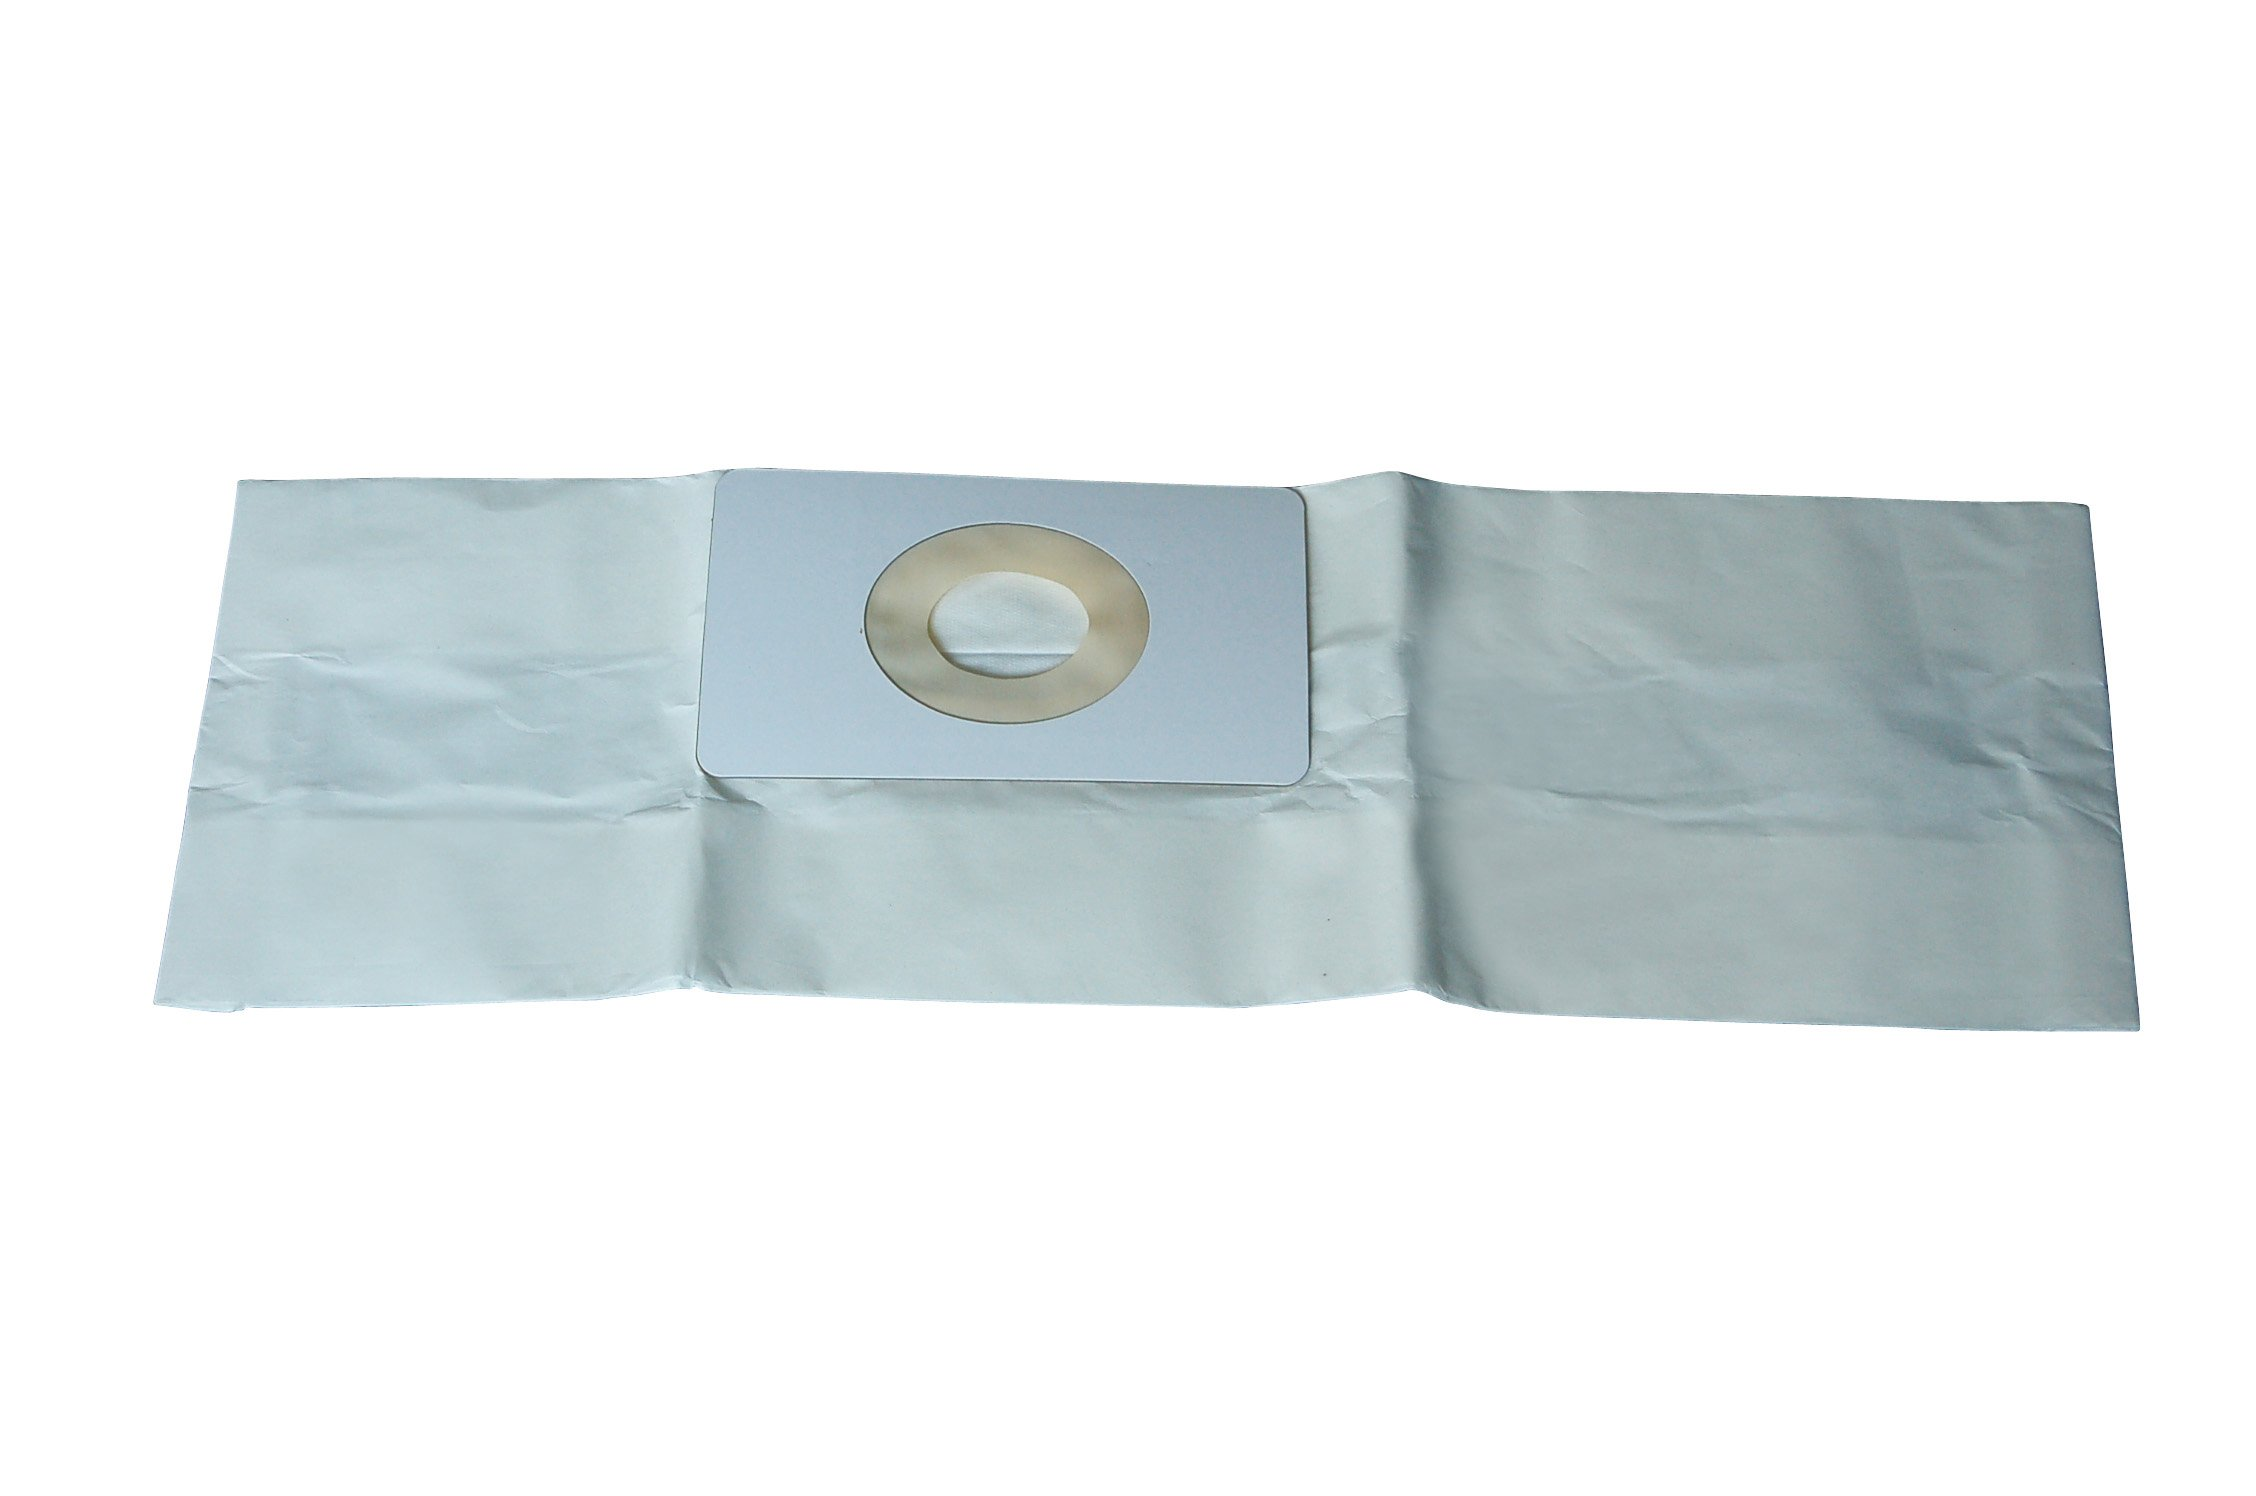 Nss Pacer 30 Wide Area Vac Bag For Vacuum Cleaner